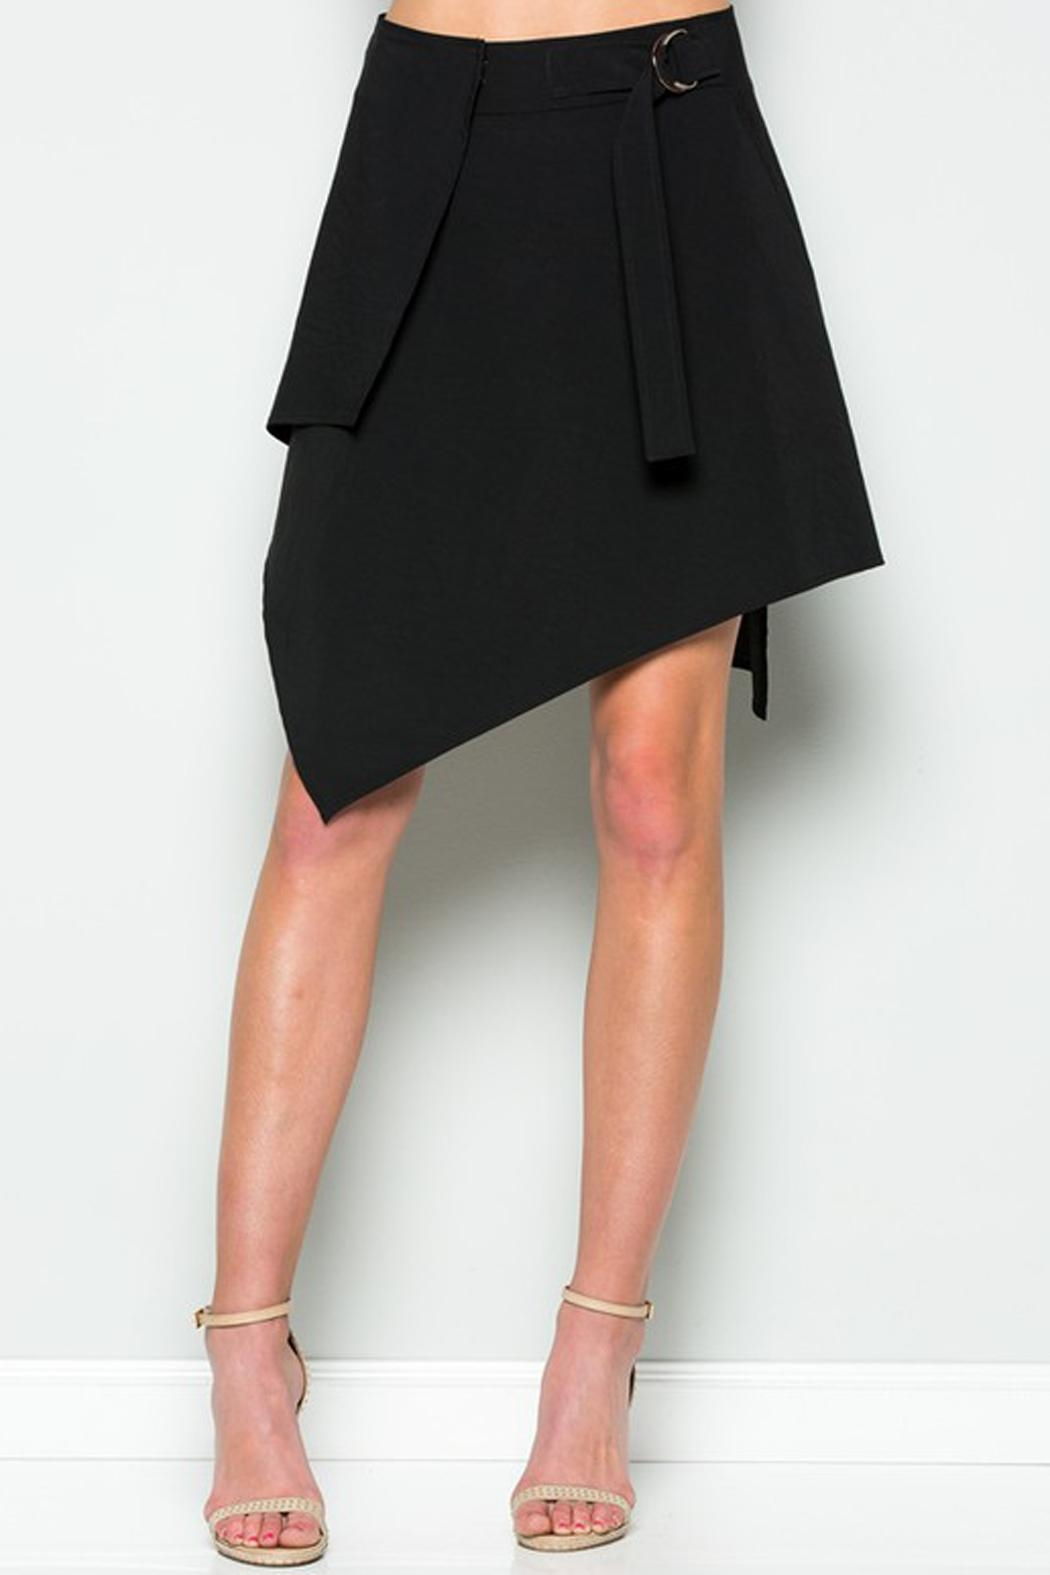 essue Mina Skirt - Main Image